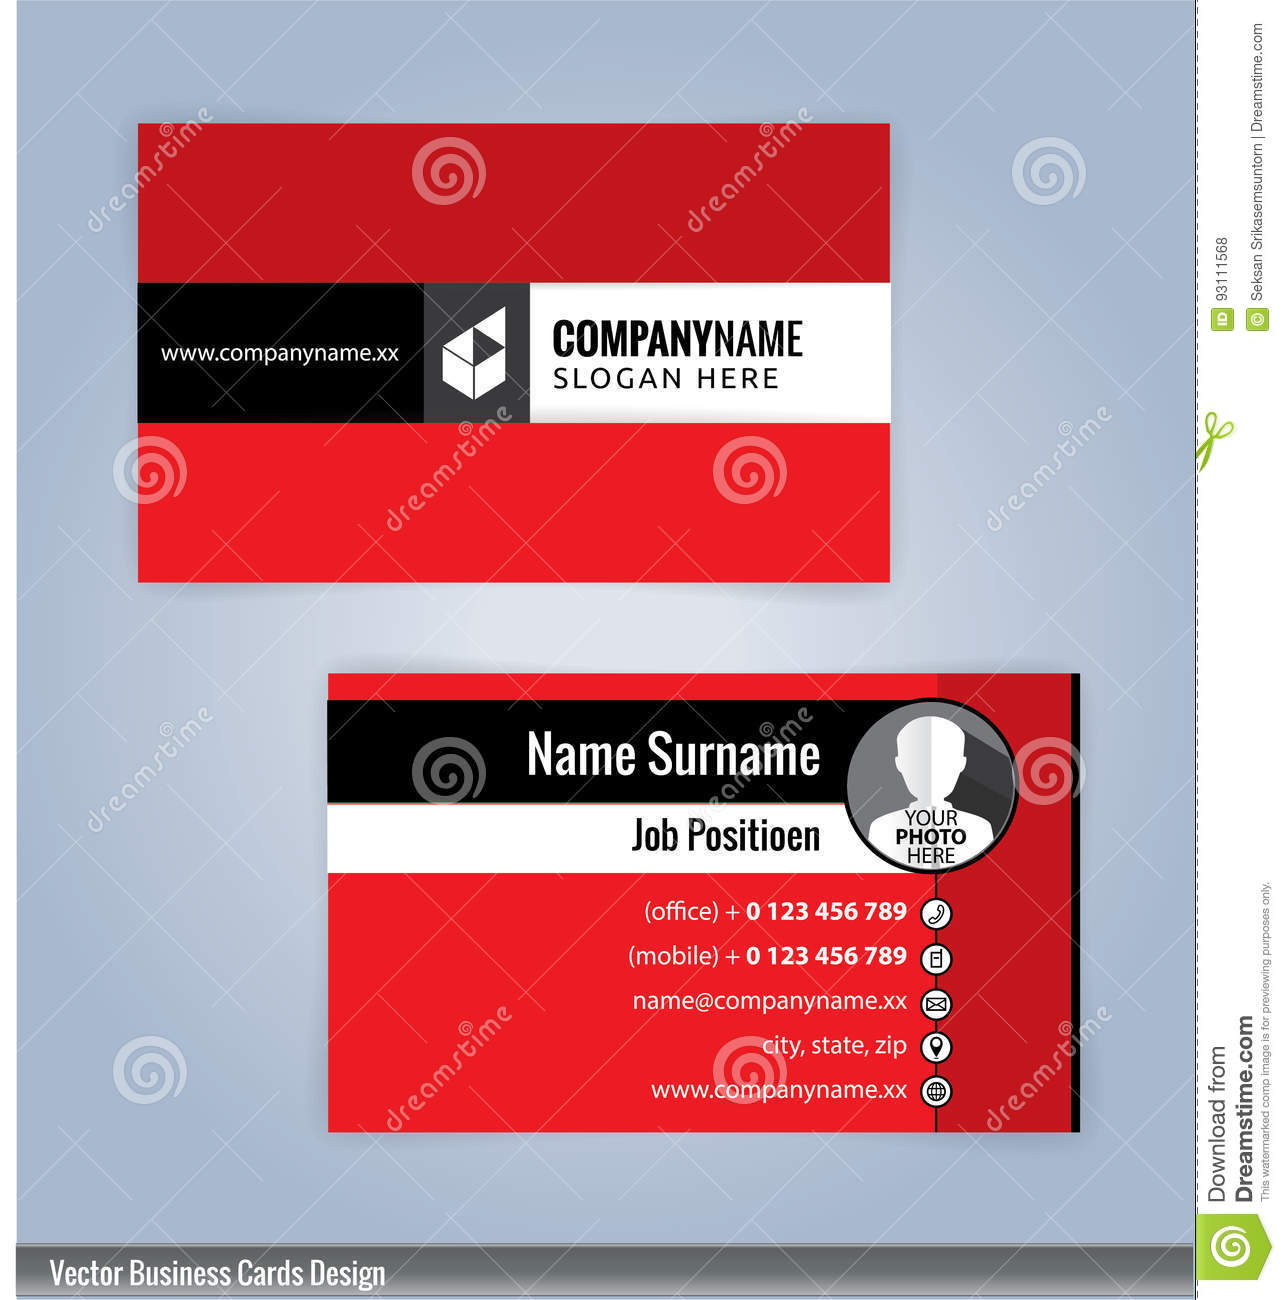 business card template red background stock vector illustration